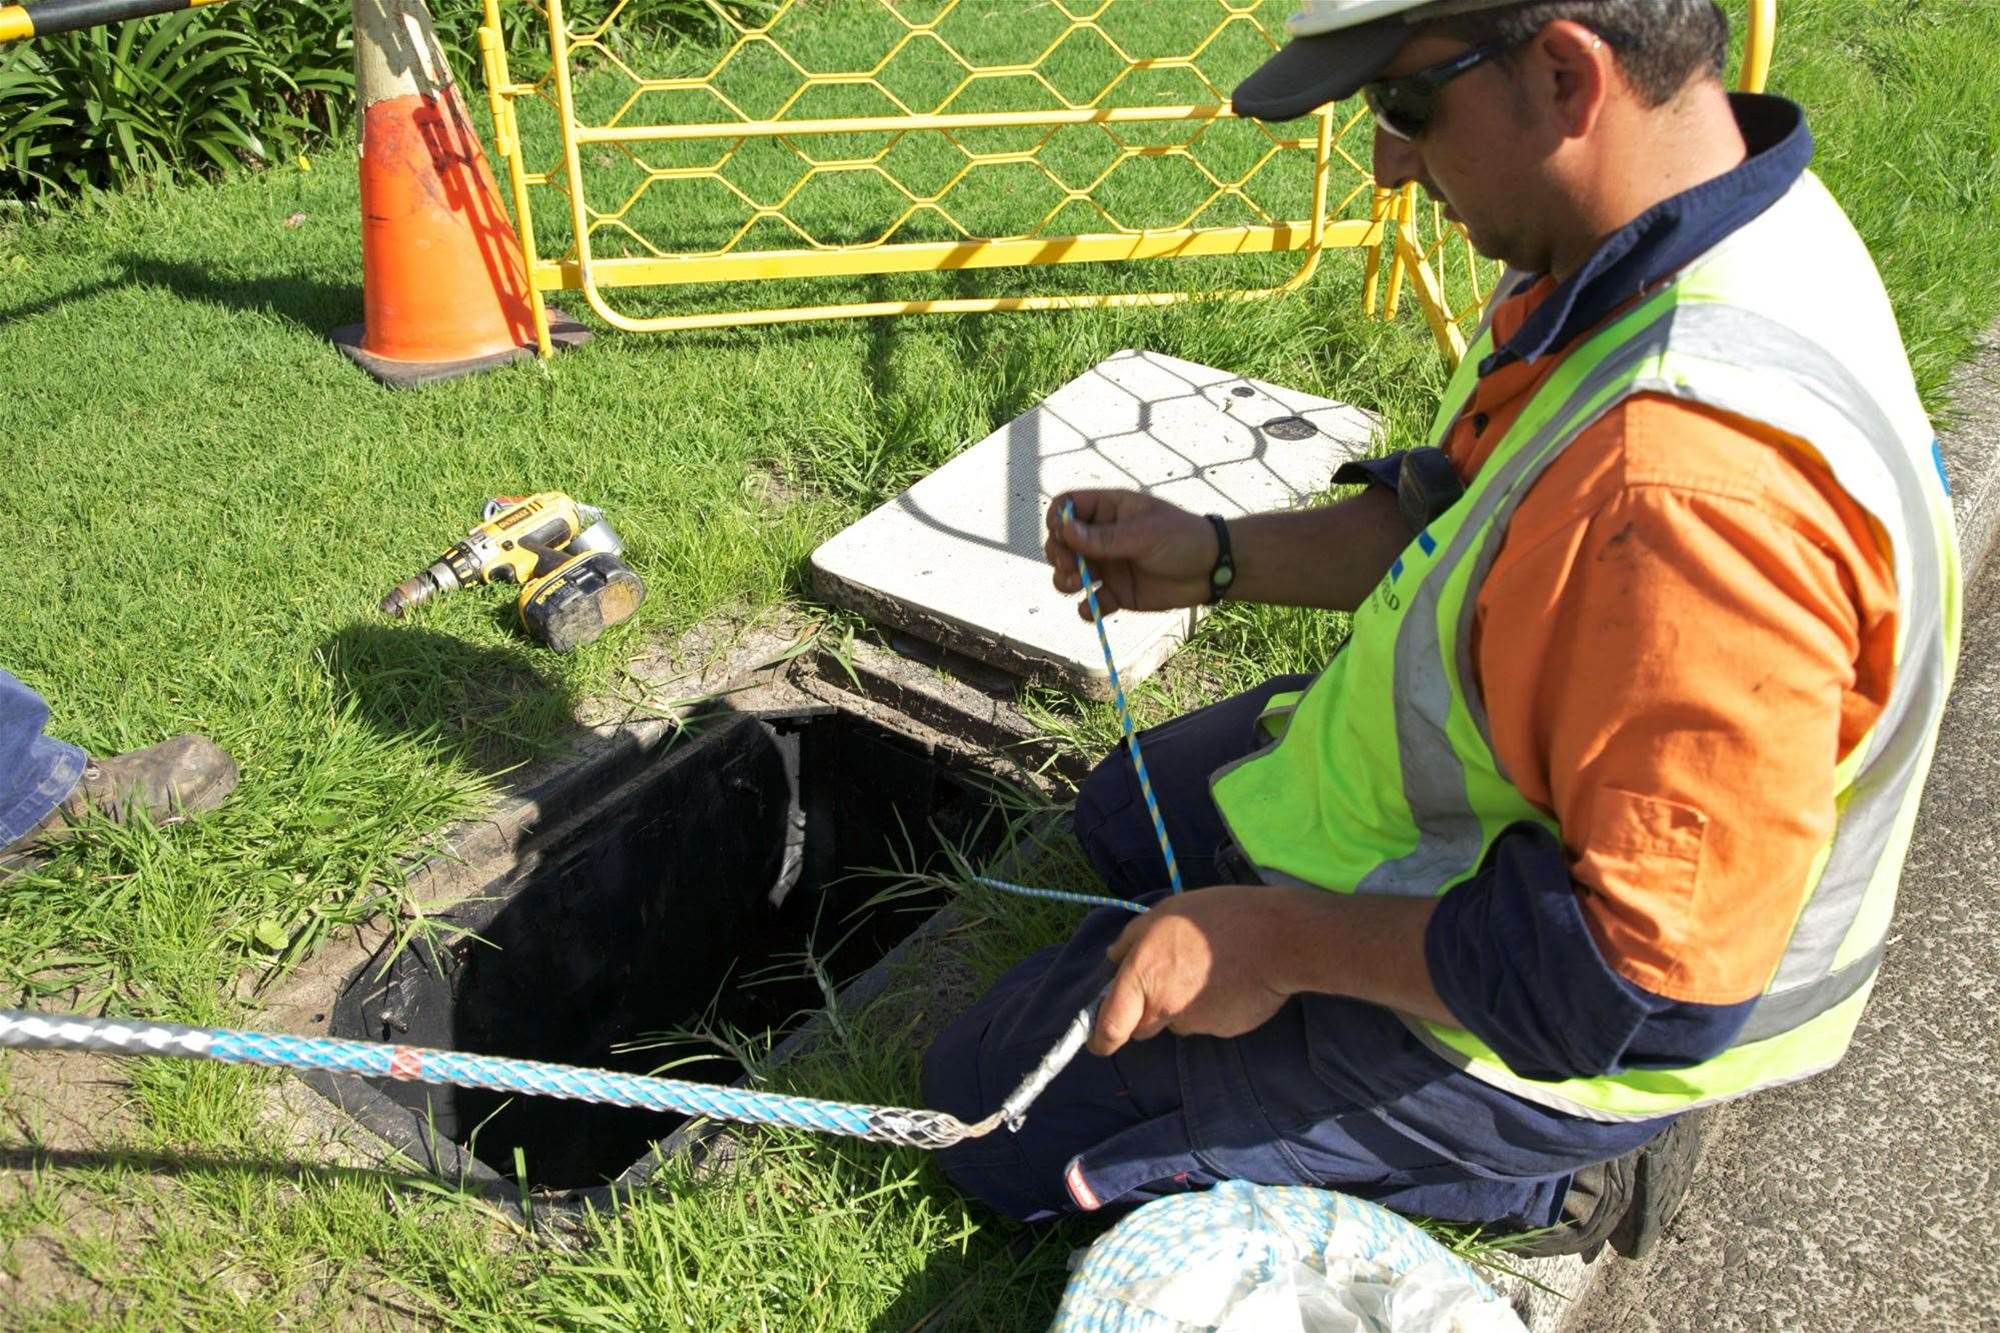 NBN Co to spend $1.4bn more on regional rollout